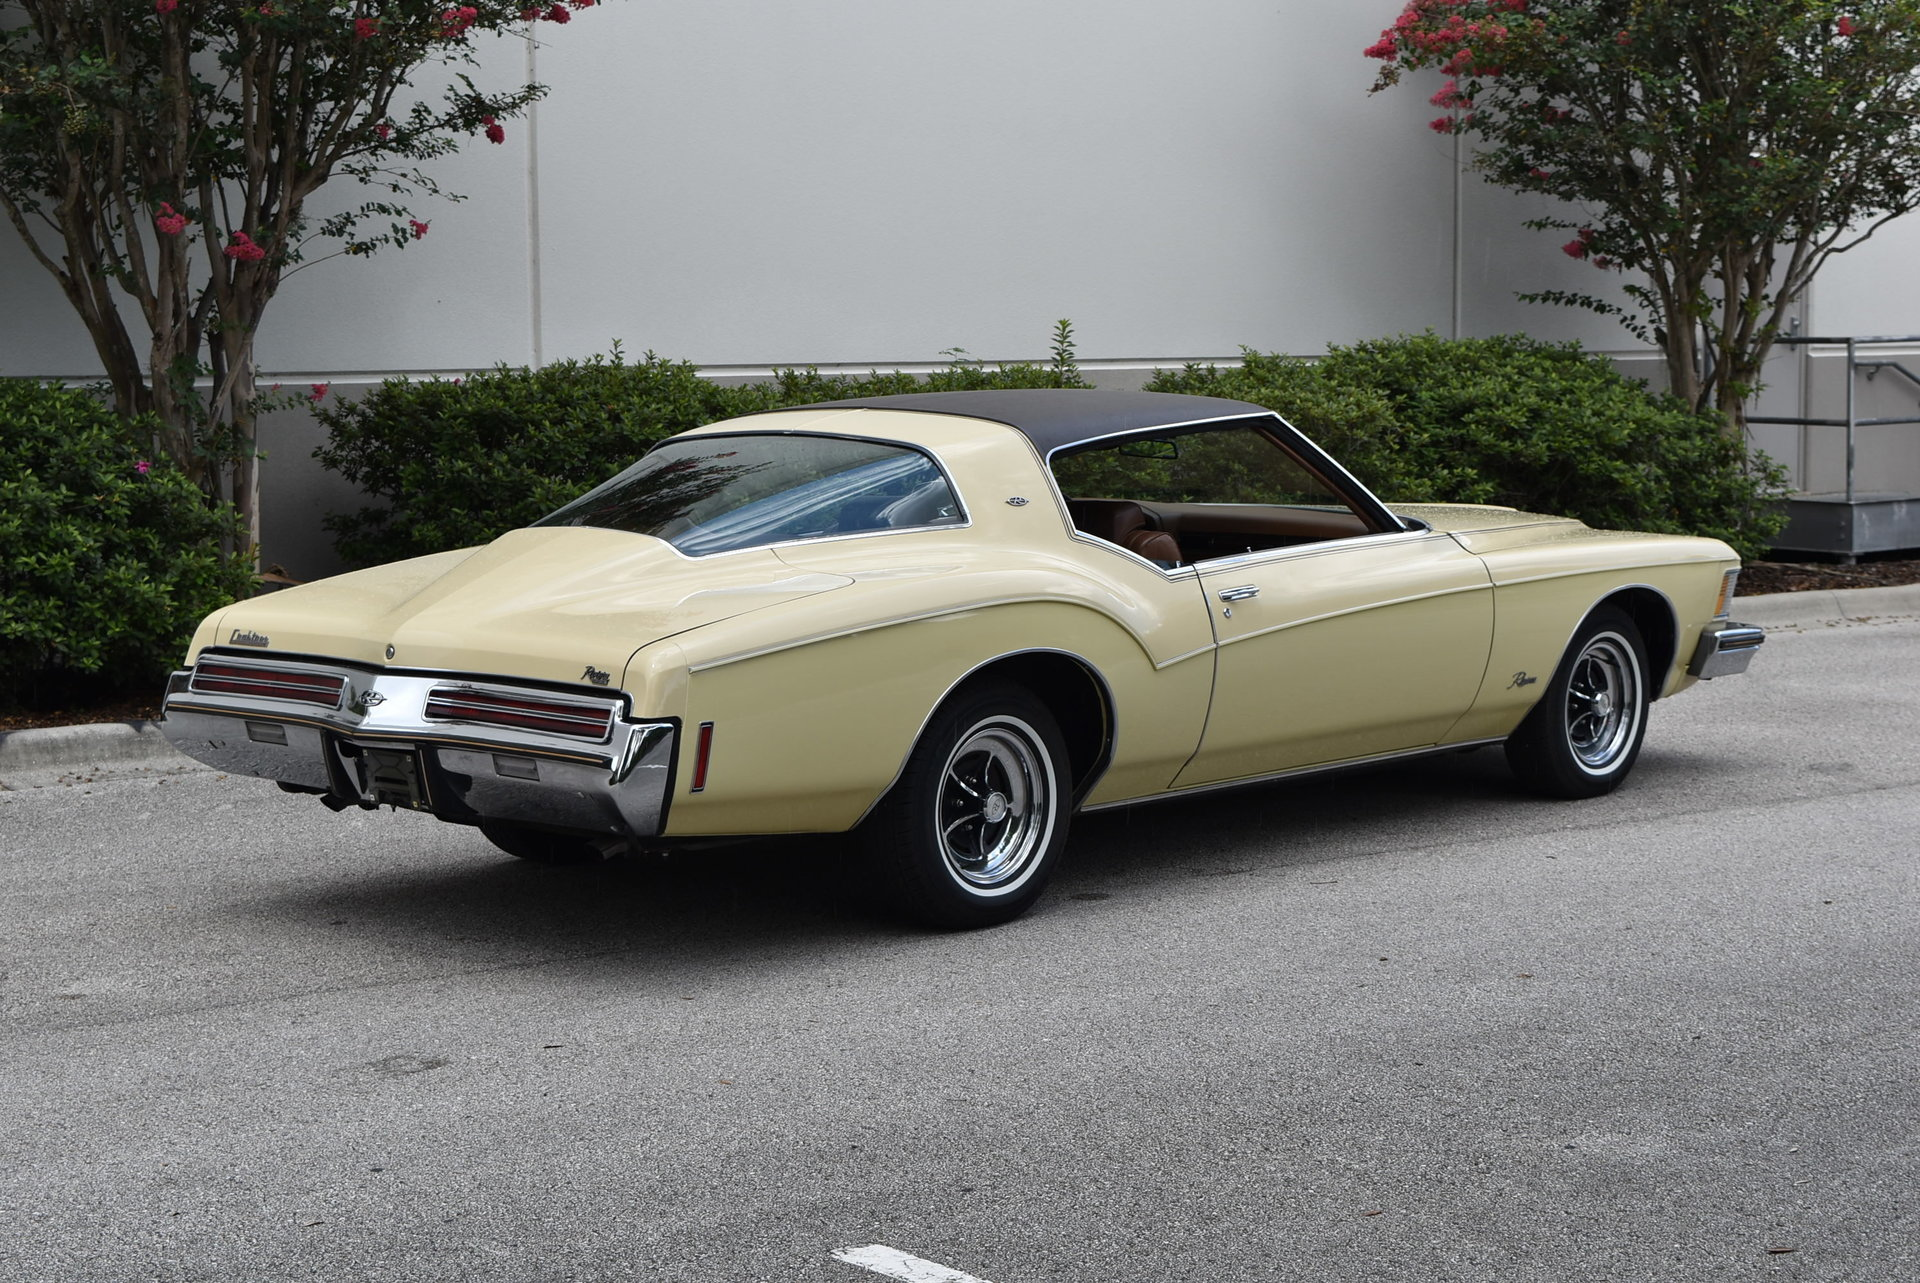 keattila 1973 Buick Riviera Specs, Photos, Modification ... |1973 Buick Riviera